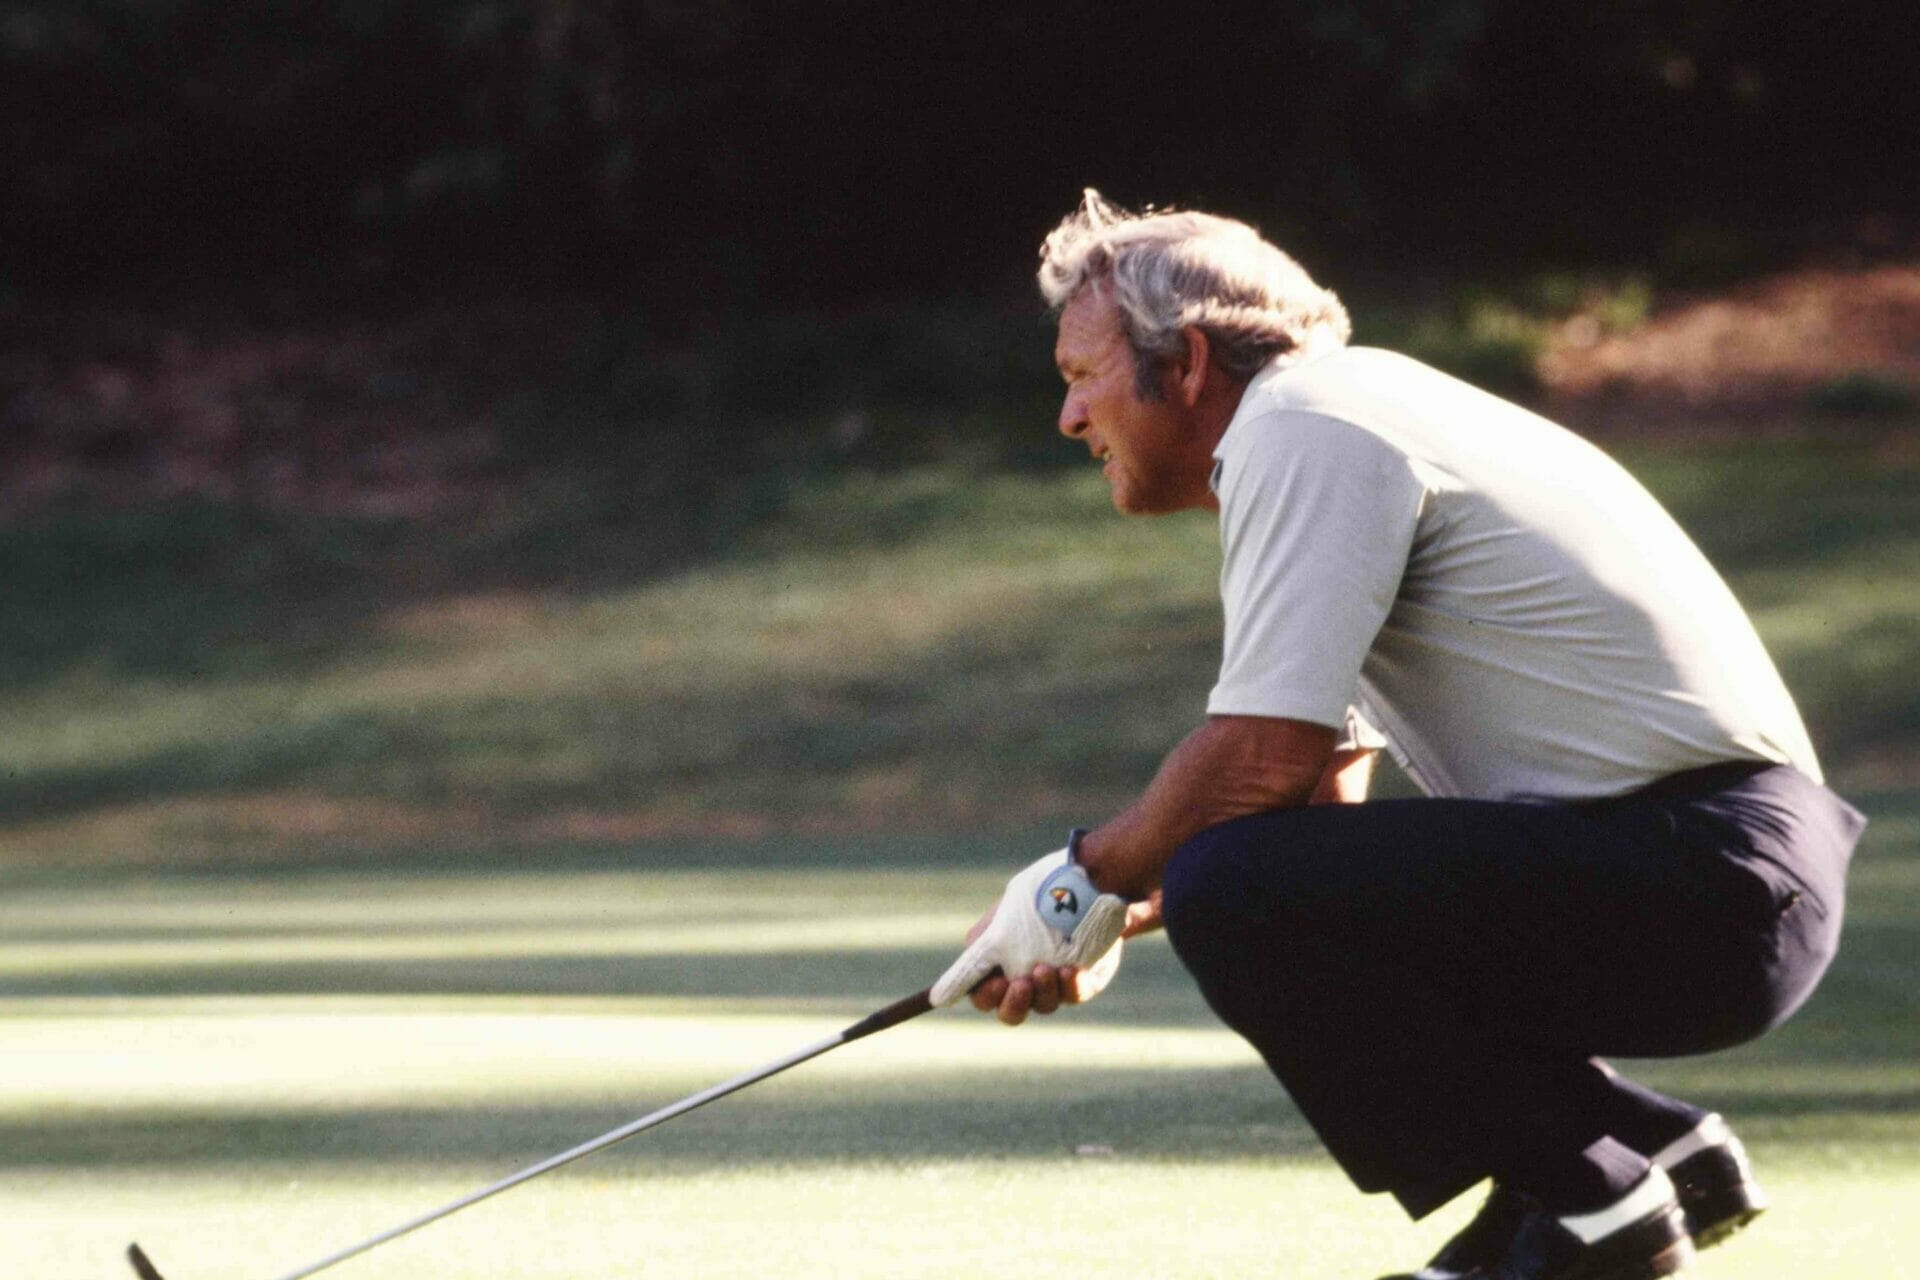 At this week's Arnold Palmer Invitational presented by Mastercard, the PGA TOUR announced that as a tribute to the late Arnold Palmer, the PGA TOUR Rookie ...